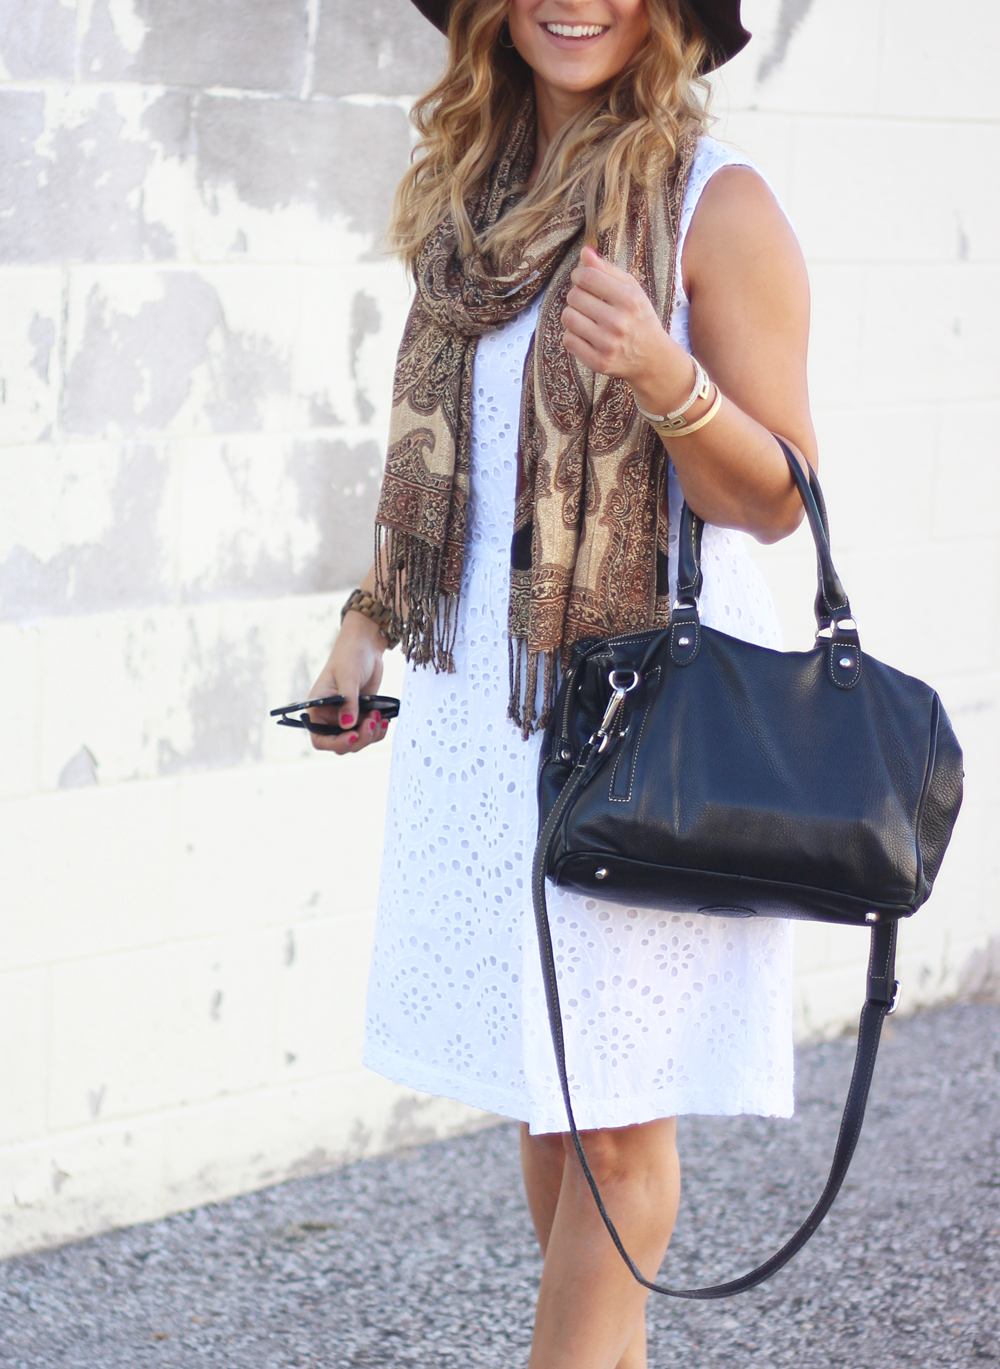 Style Tips - How to wear white in the fall